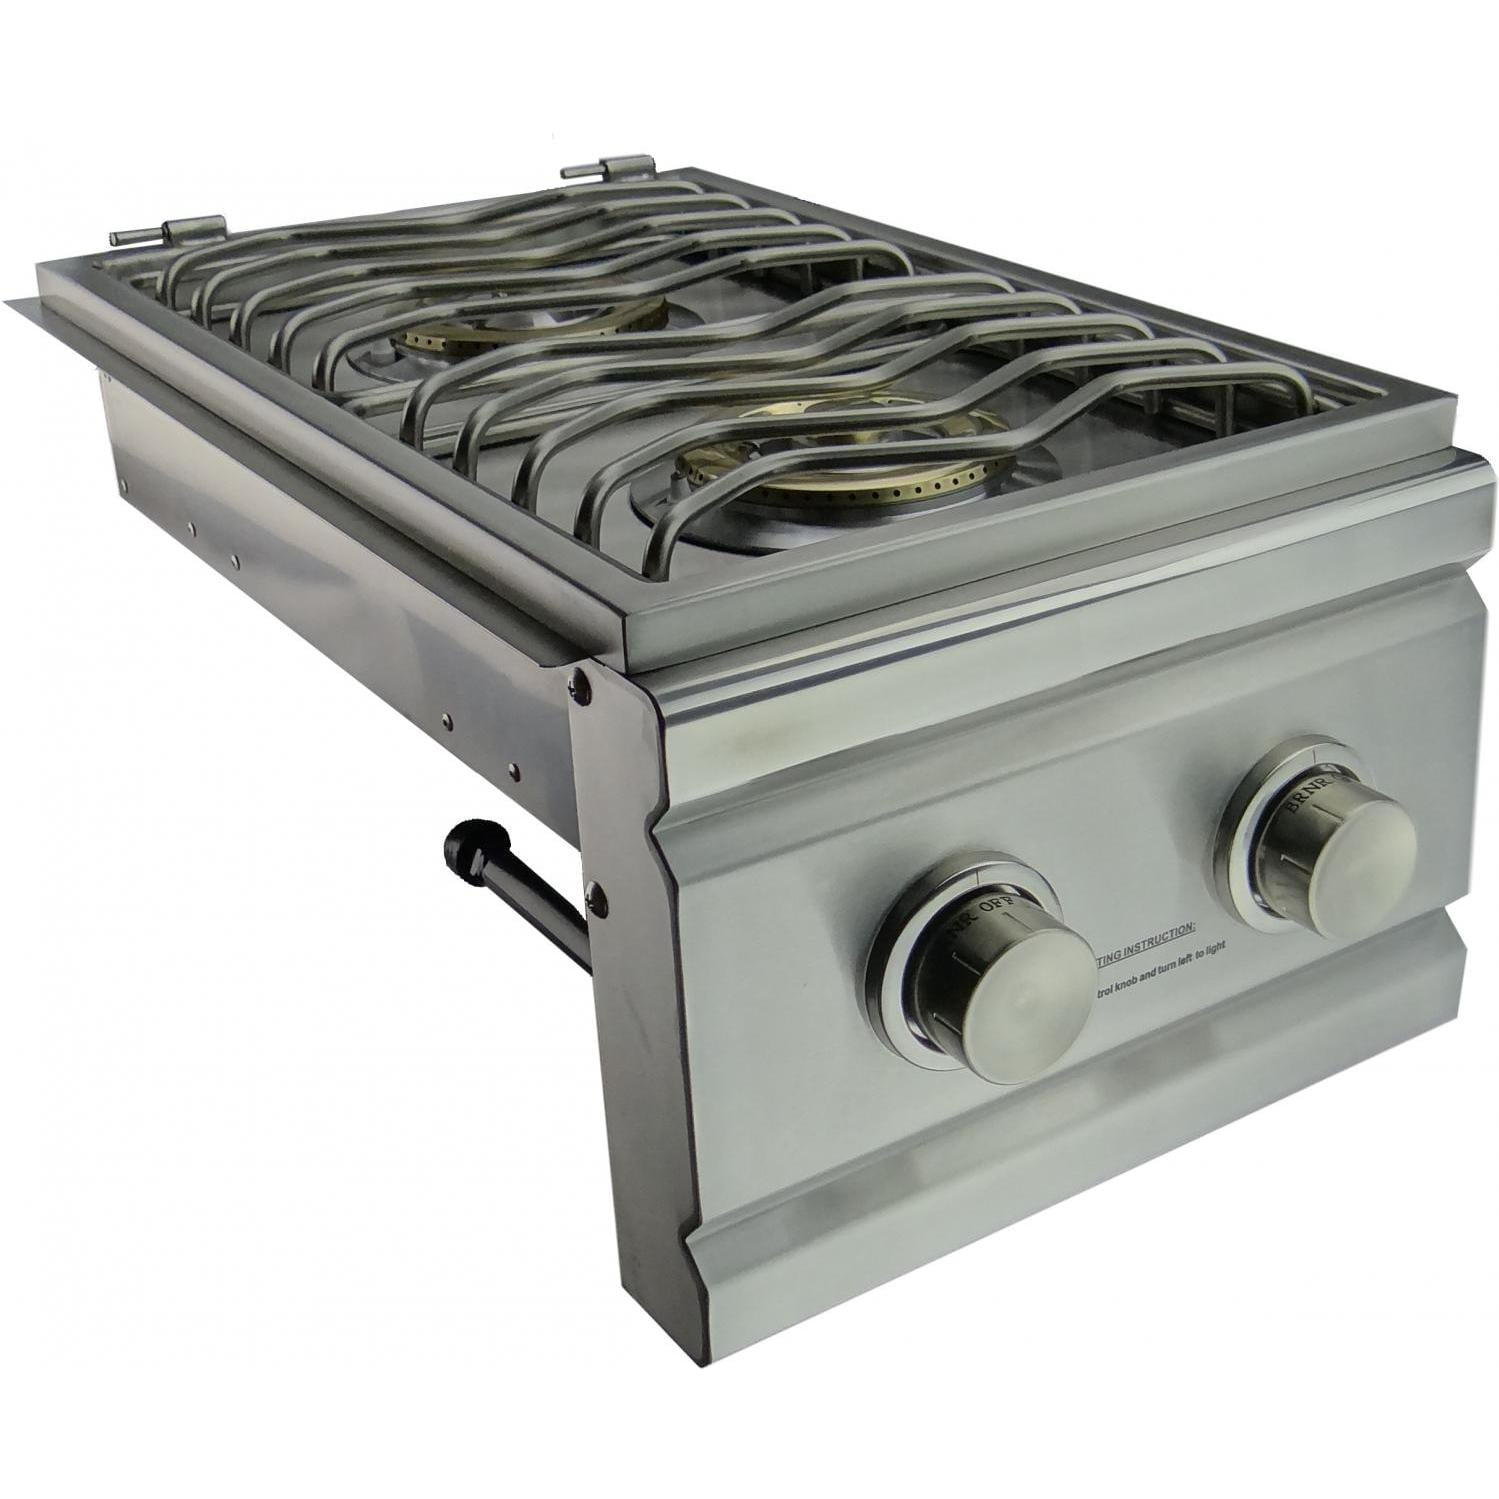 RCS Propane Gas Double Side Burner